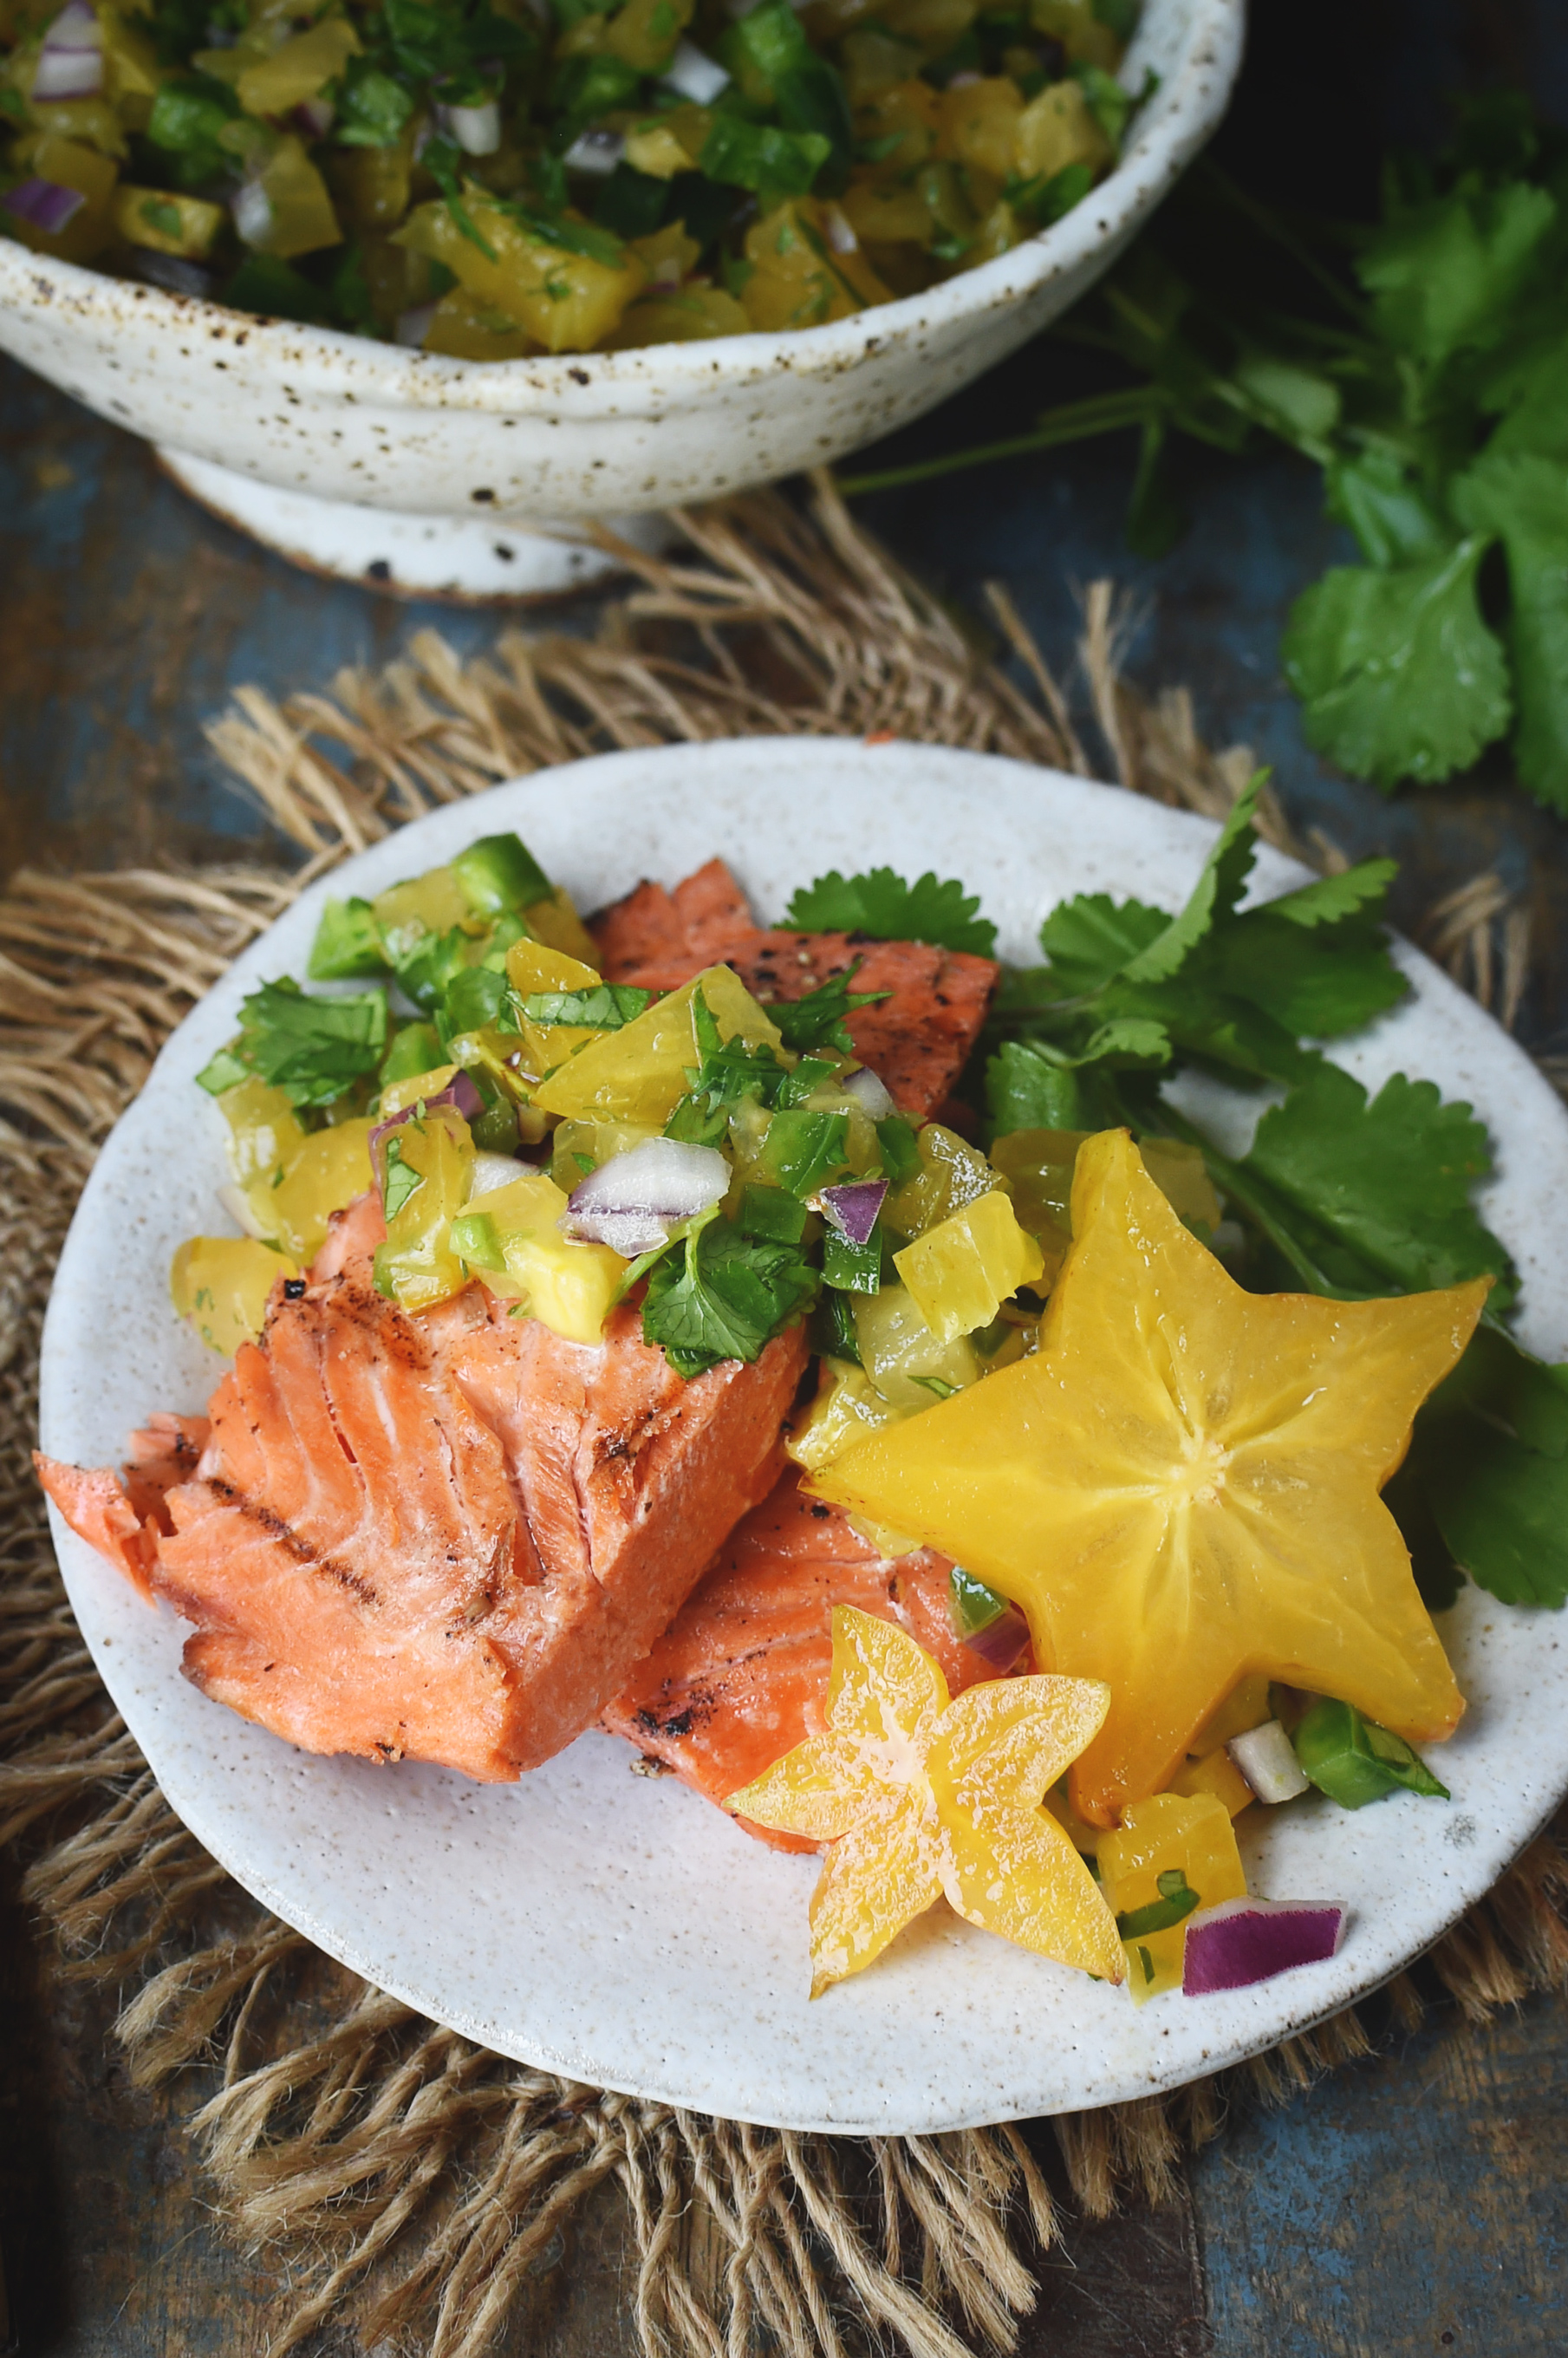 Low-Carb Salmon with Starfruit Salsa-served on a plate.